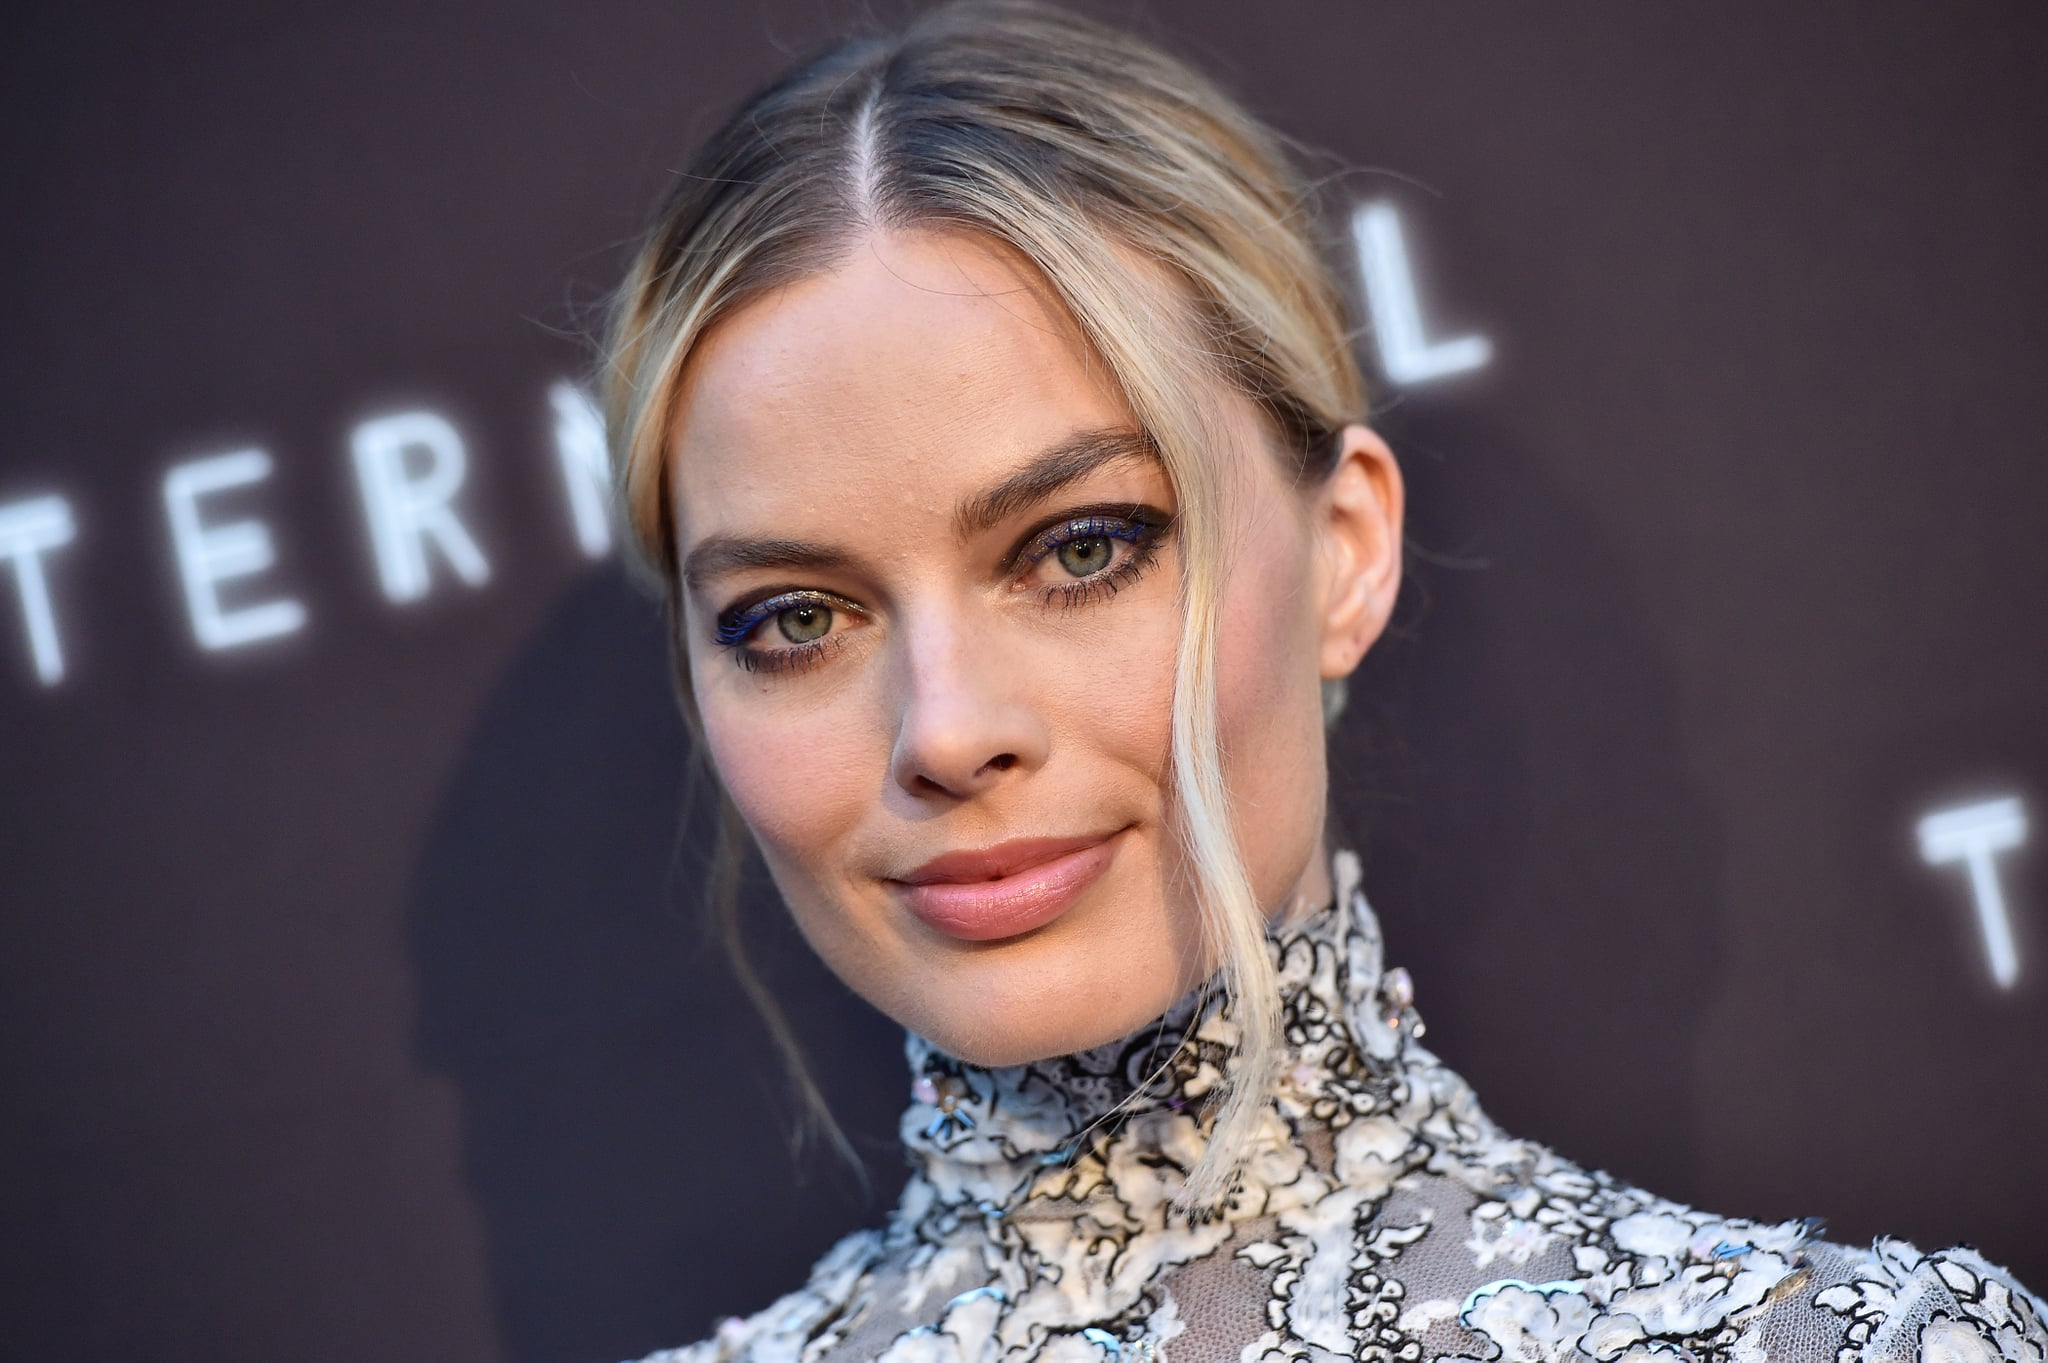 HOLLYWOOD, CA - MAY 08:  Actress Margot Robbie attends the premiere of RLJE Films' 'Terminal' at ArcLight Cinemas on May 8, 2018 in Hollywood, California.  (Photo by Axelle/Bauer-Griffin/FilmMagic)